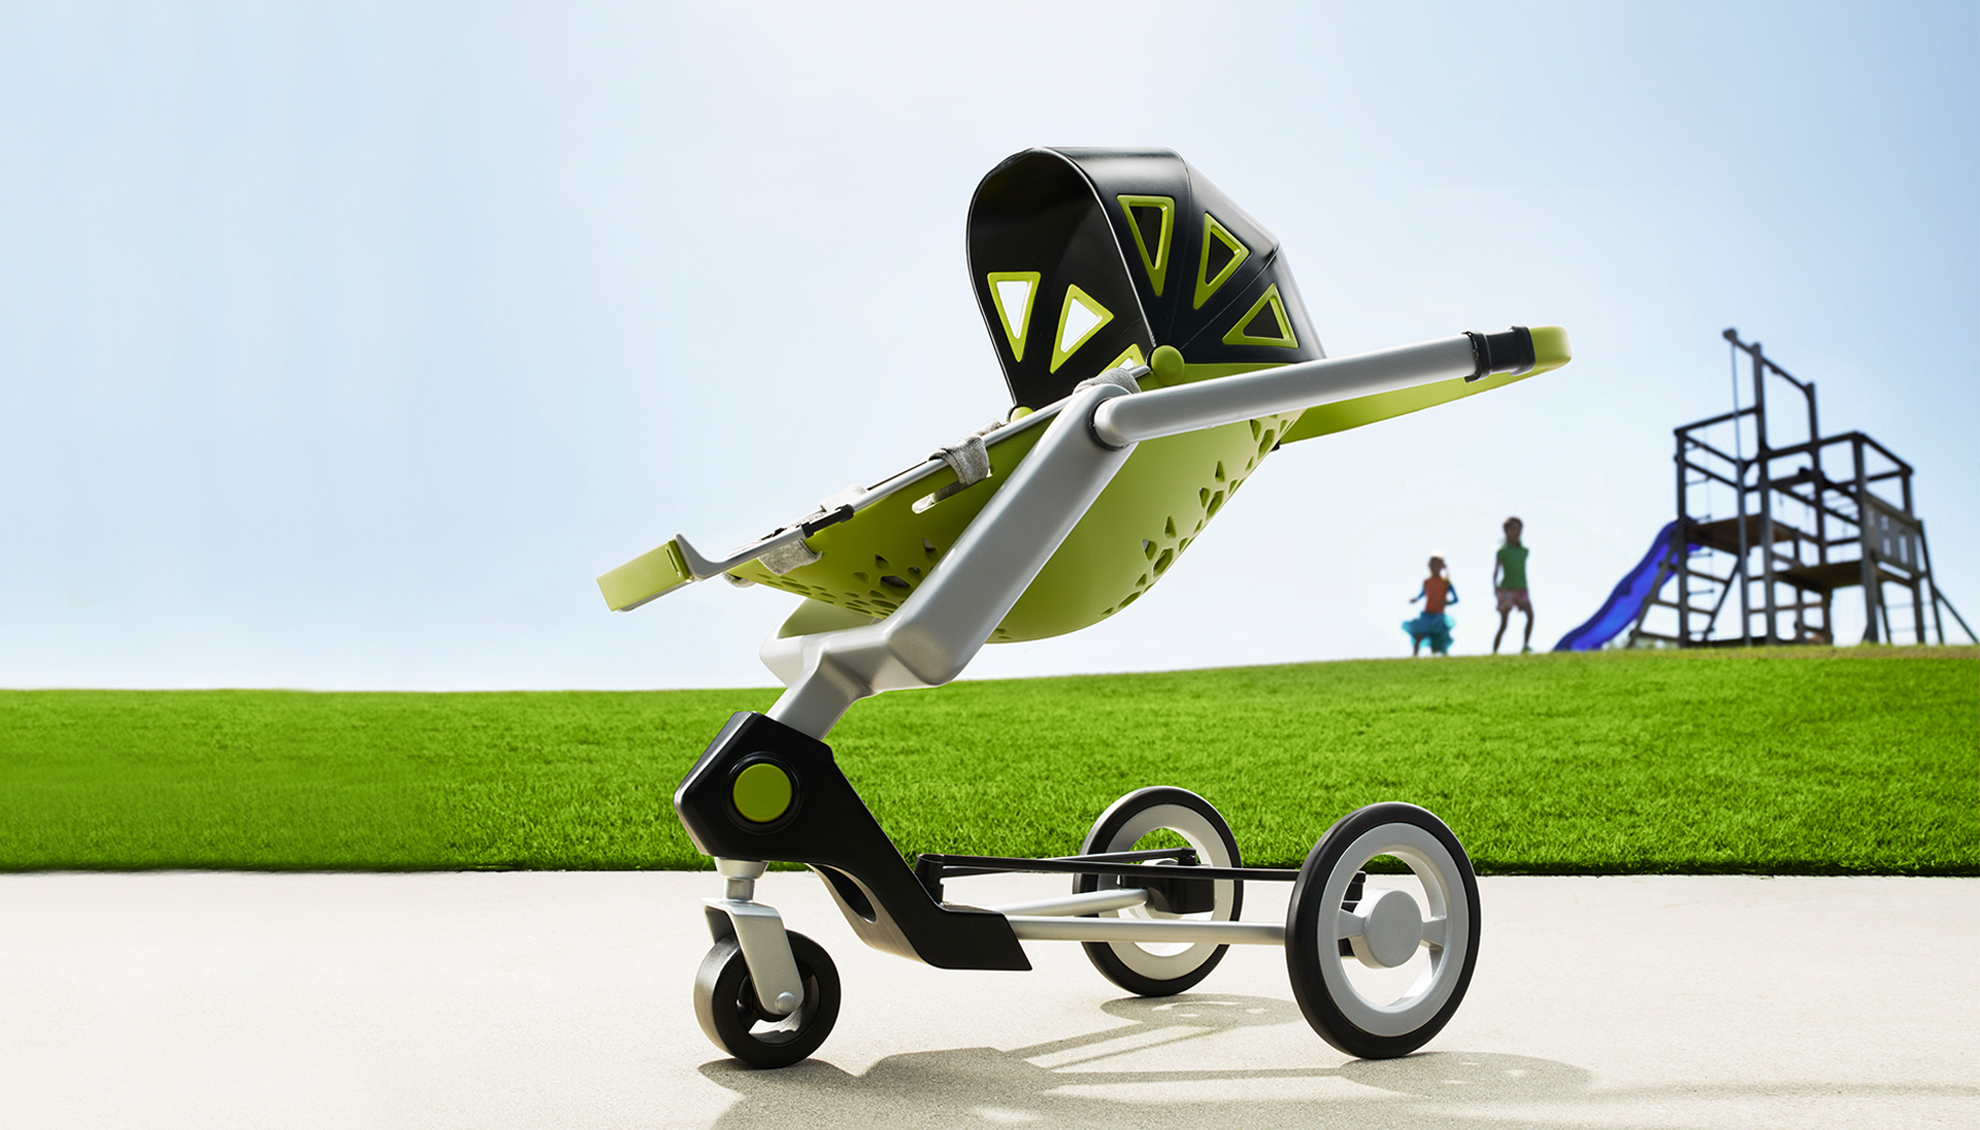 A stroller throughout a child's journey